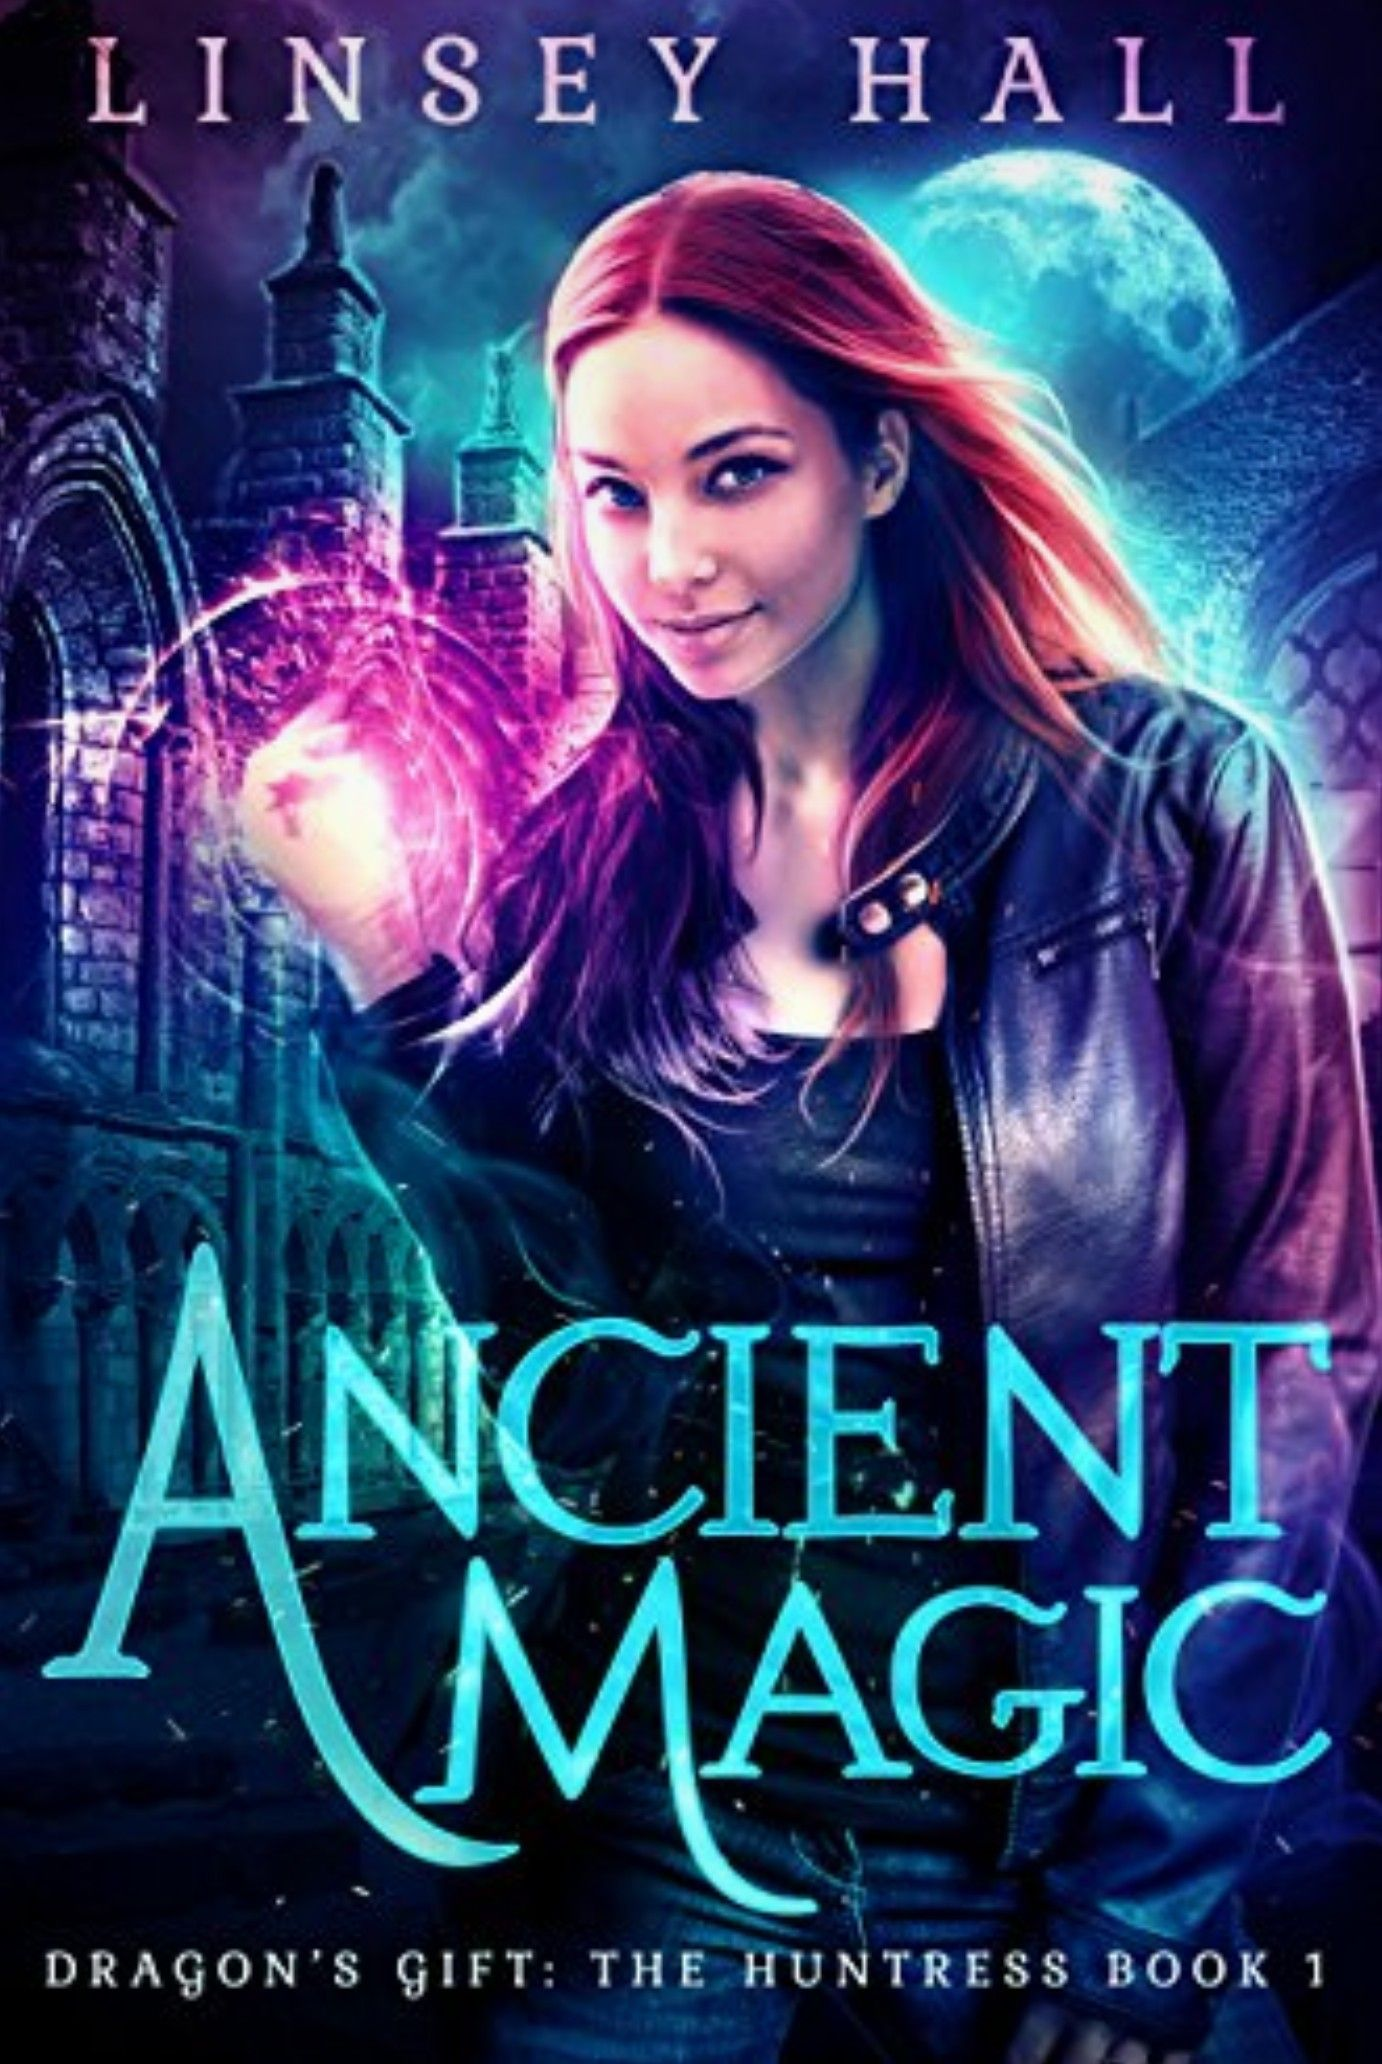 Pin by Dina Bredahl on Books I love in 2019 | Paranormal romance